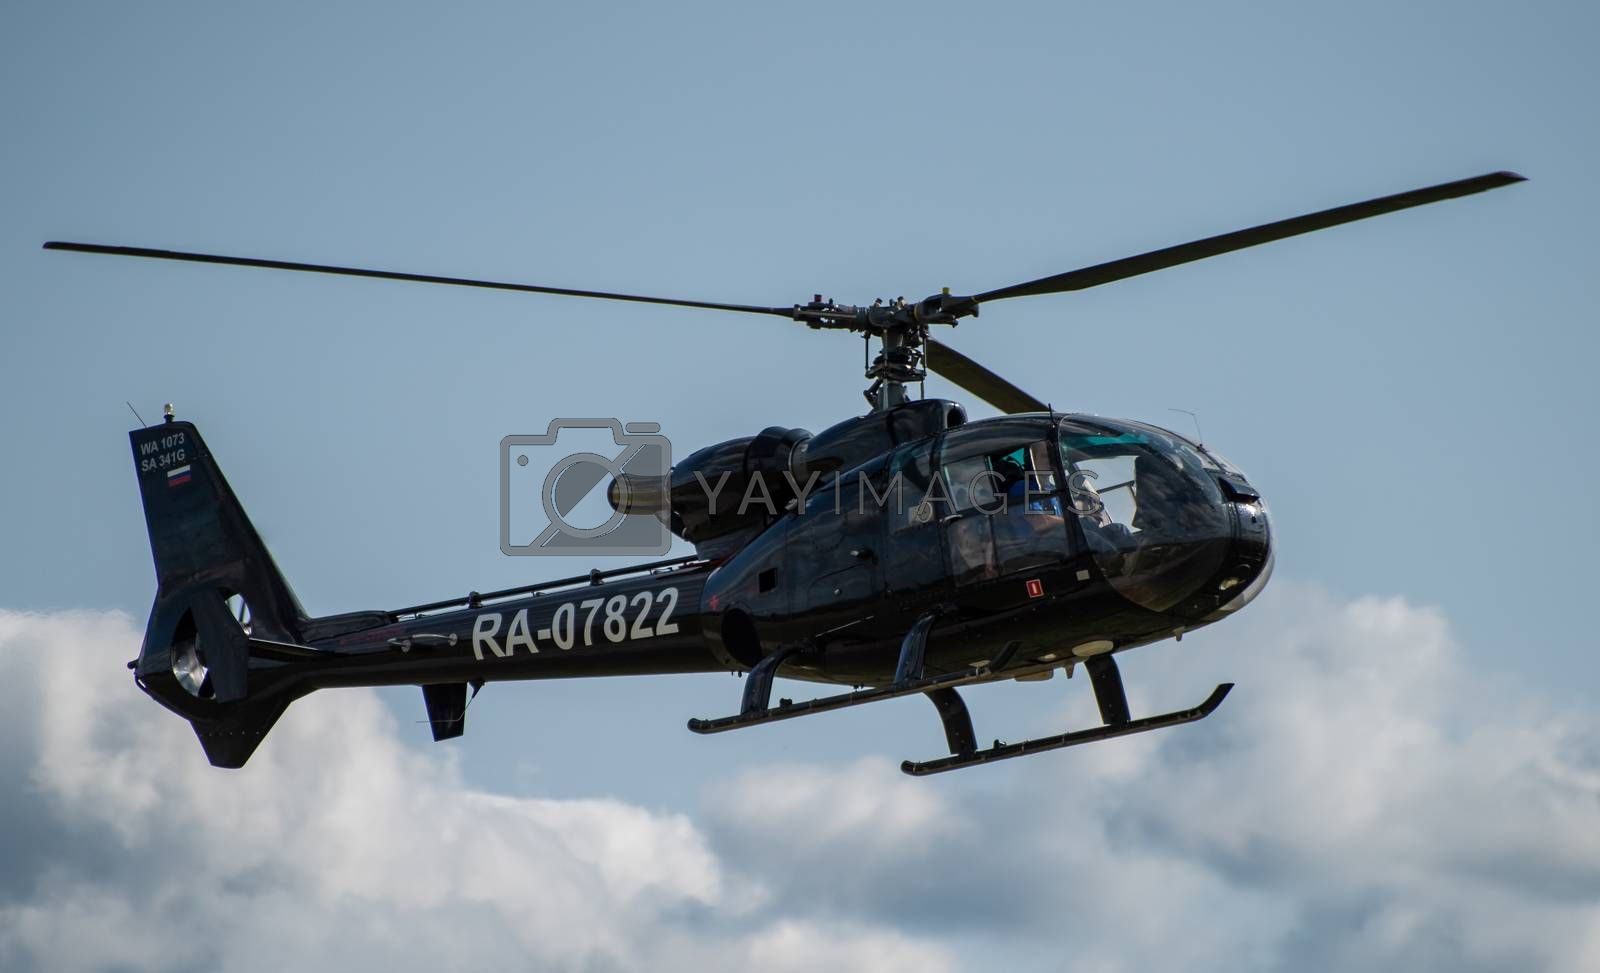 September 12, 2020, Kaluga region, Russia. Helicopter Sud-Aviation Gazelle SA 341 G at the airport Oreshkovo.